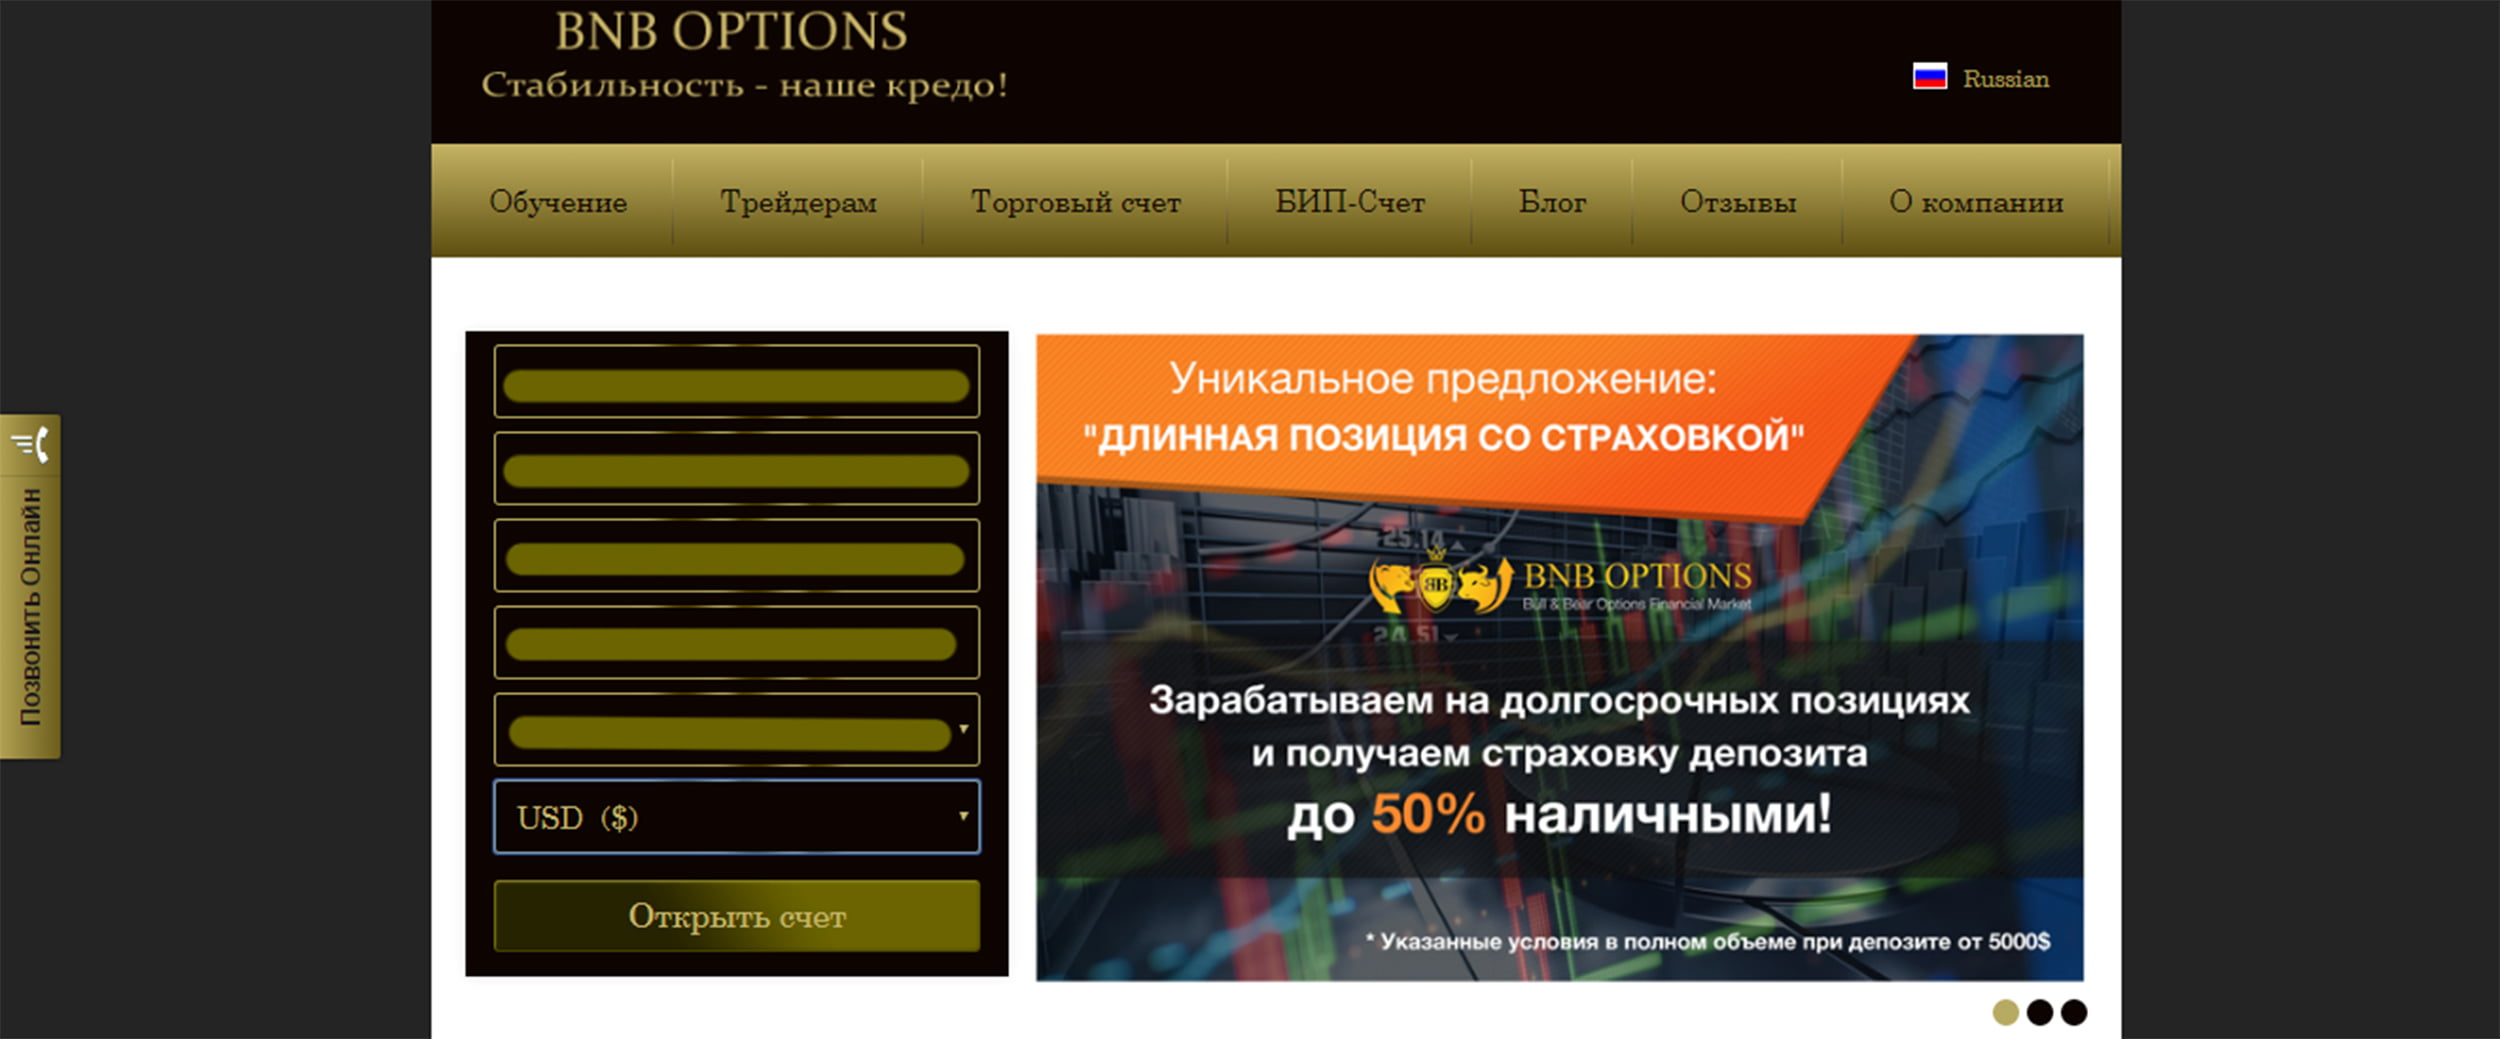 Регистрация в BnB Options